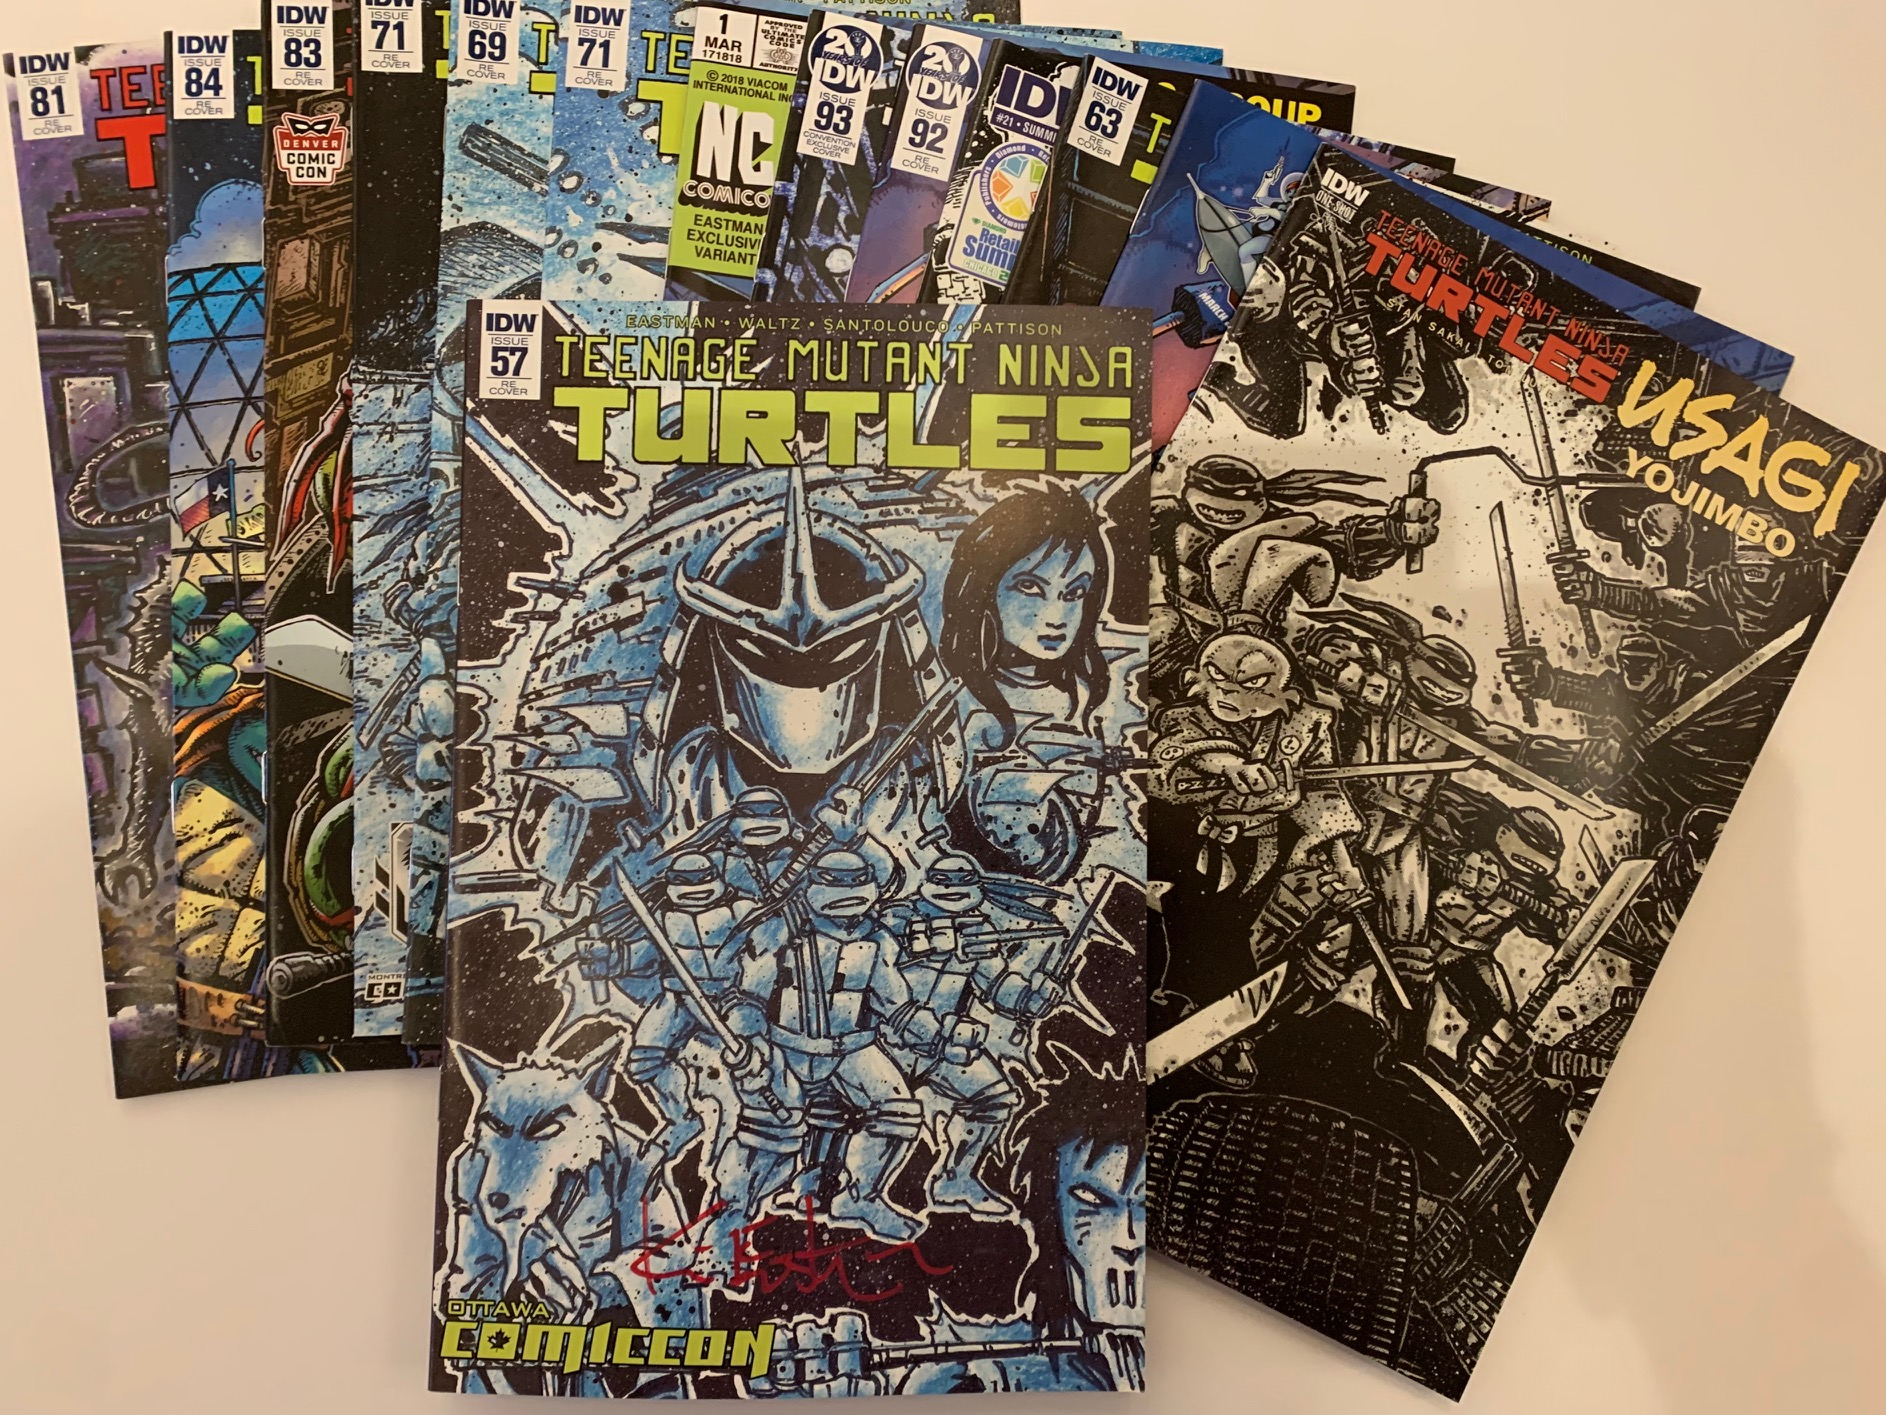 New Collected Volumes added to Store